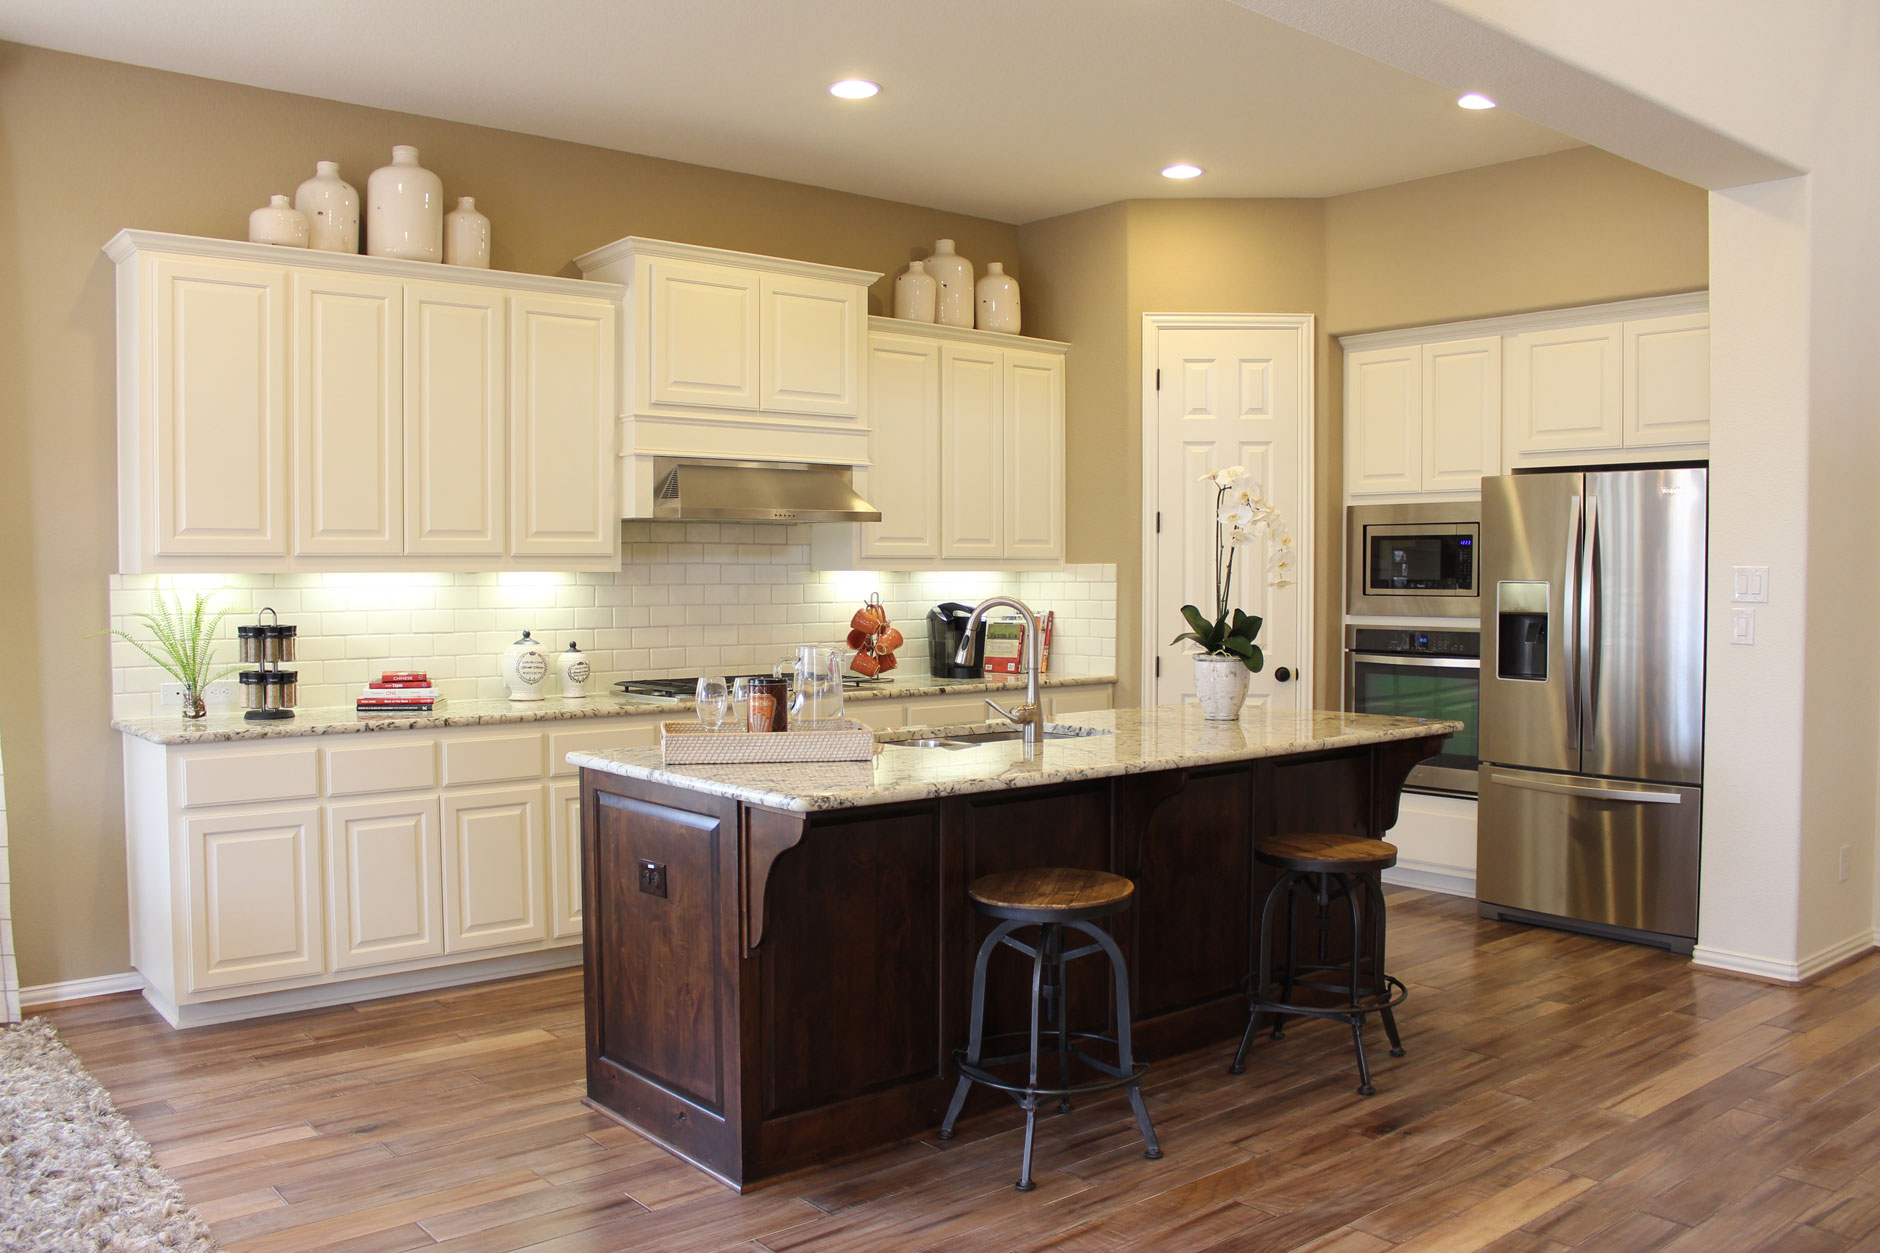 Burrows Cabinets kitchen in knotty alder and appliance end panels